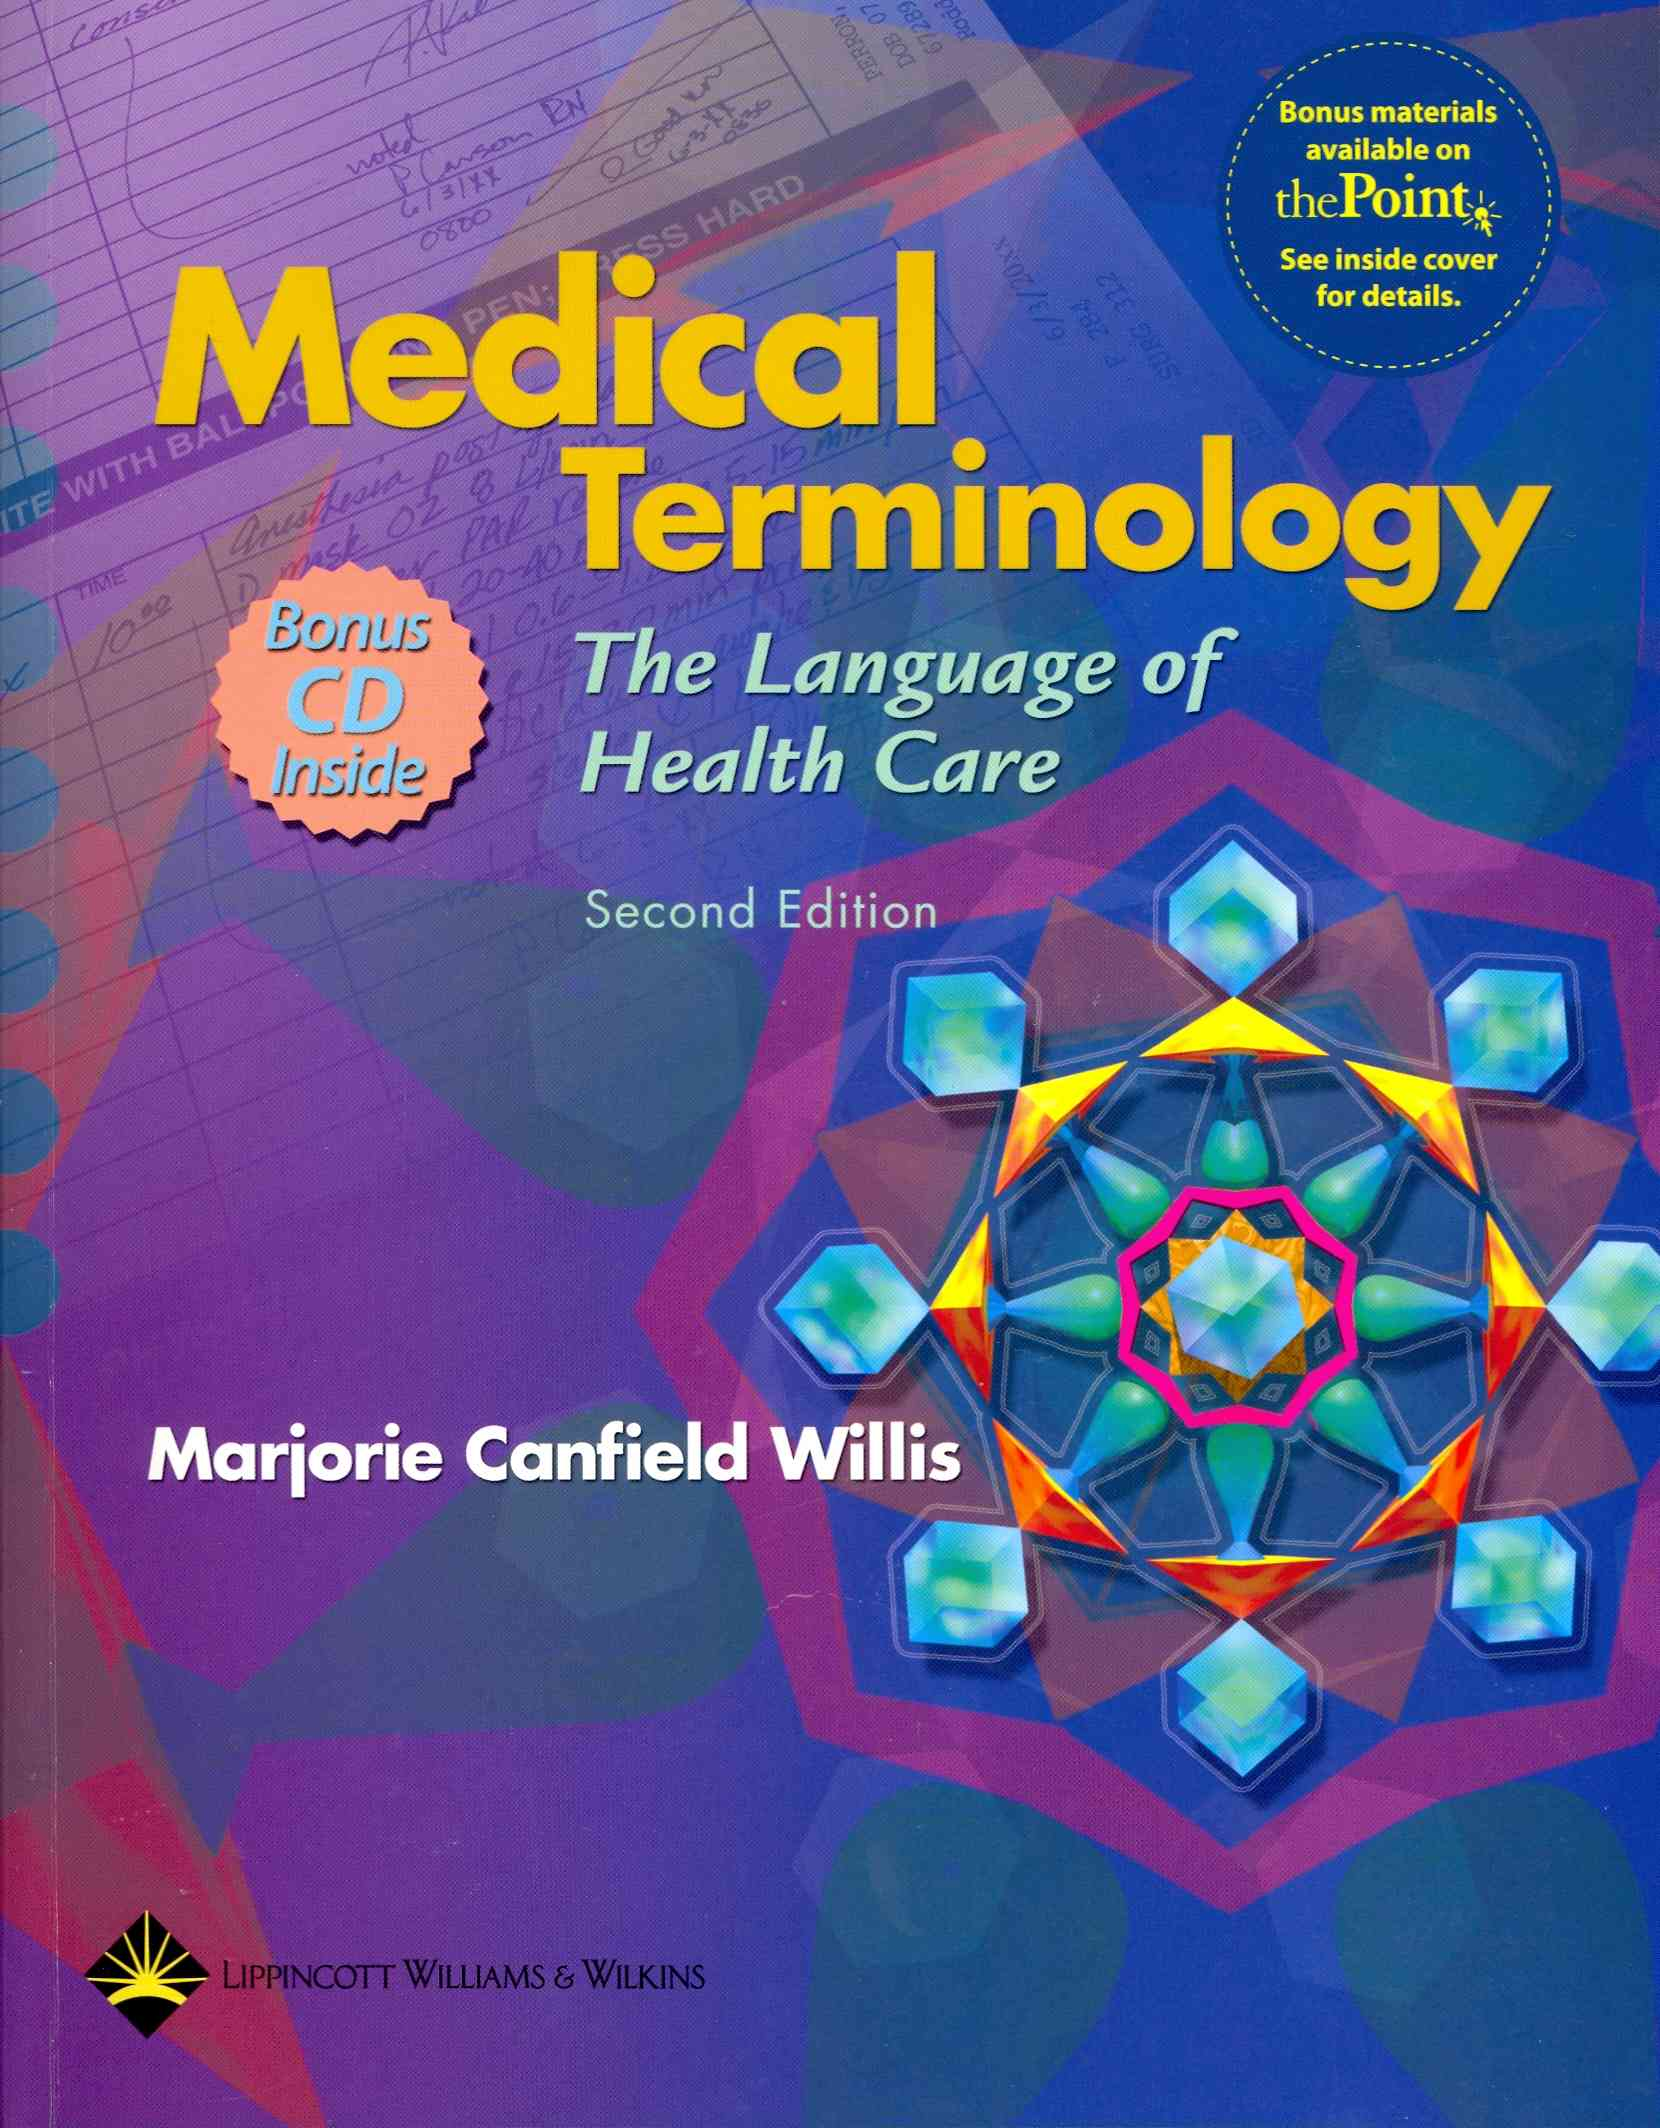 Medical Terminology / Medical Dictionary for the Health Professionals and Nursing By Willis, Marjorie Canfield